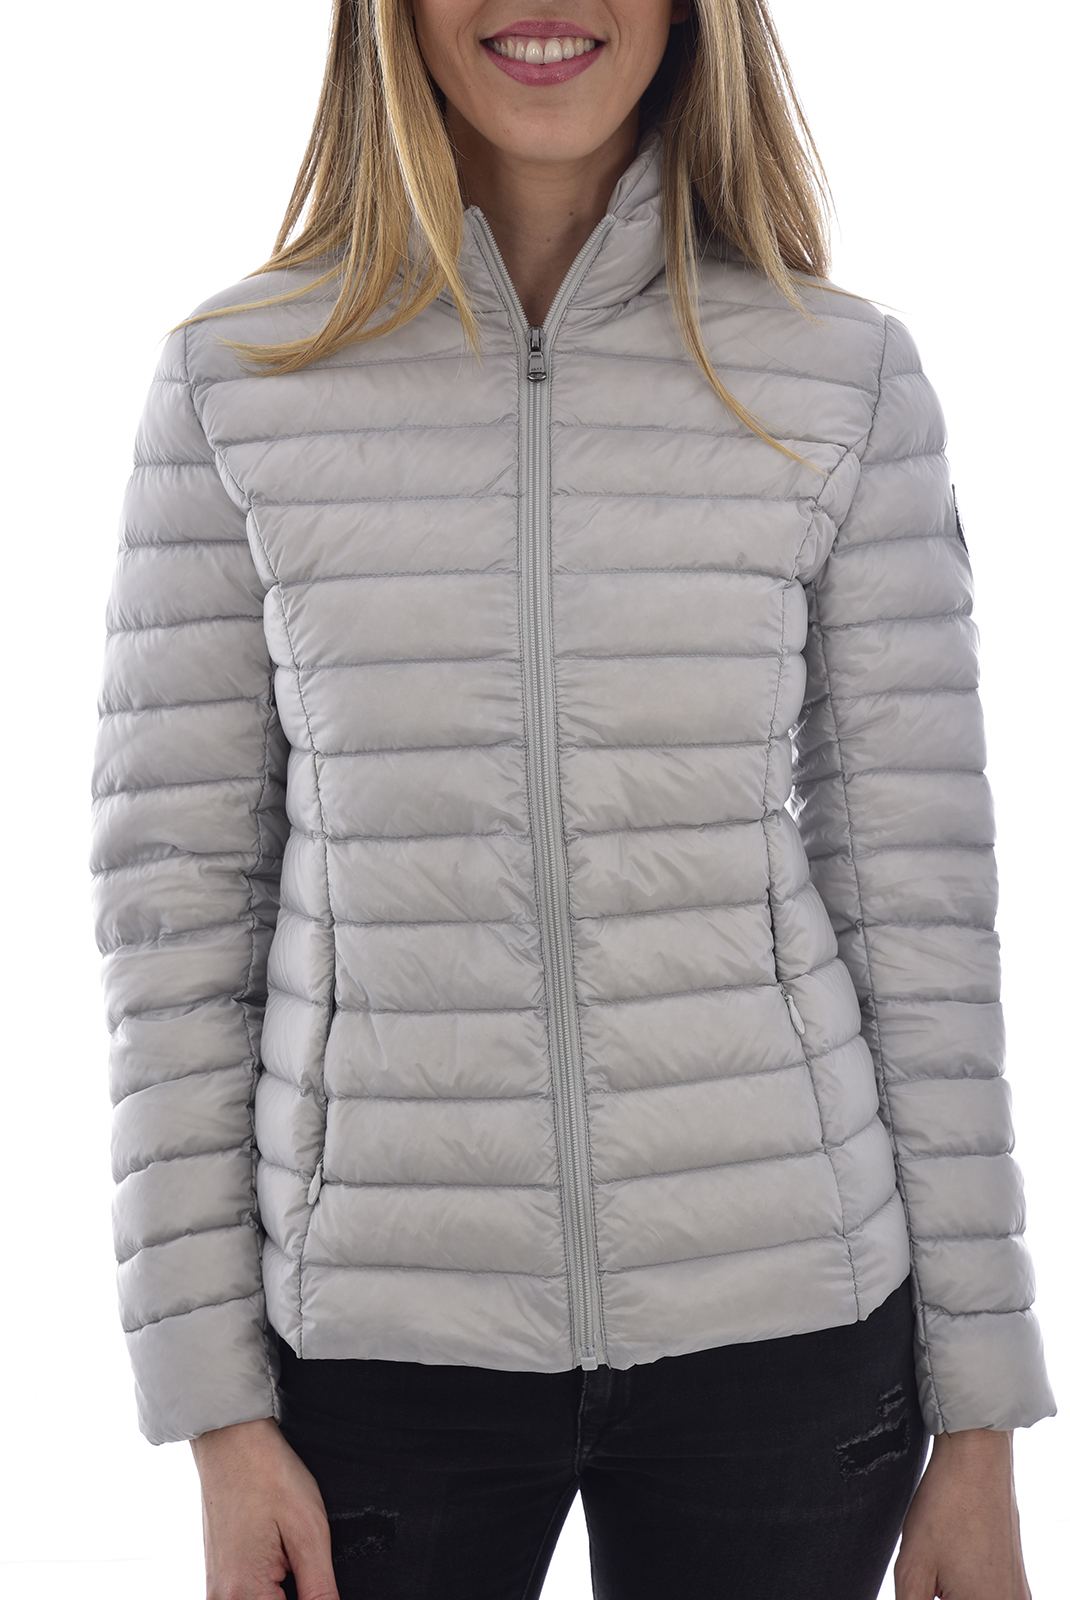 Blouson  Just over the top CHA 507 GRIS PERLE CLAIR